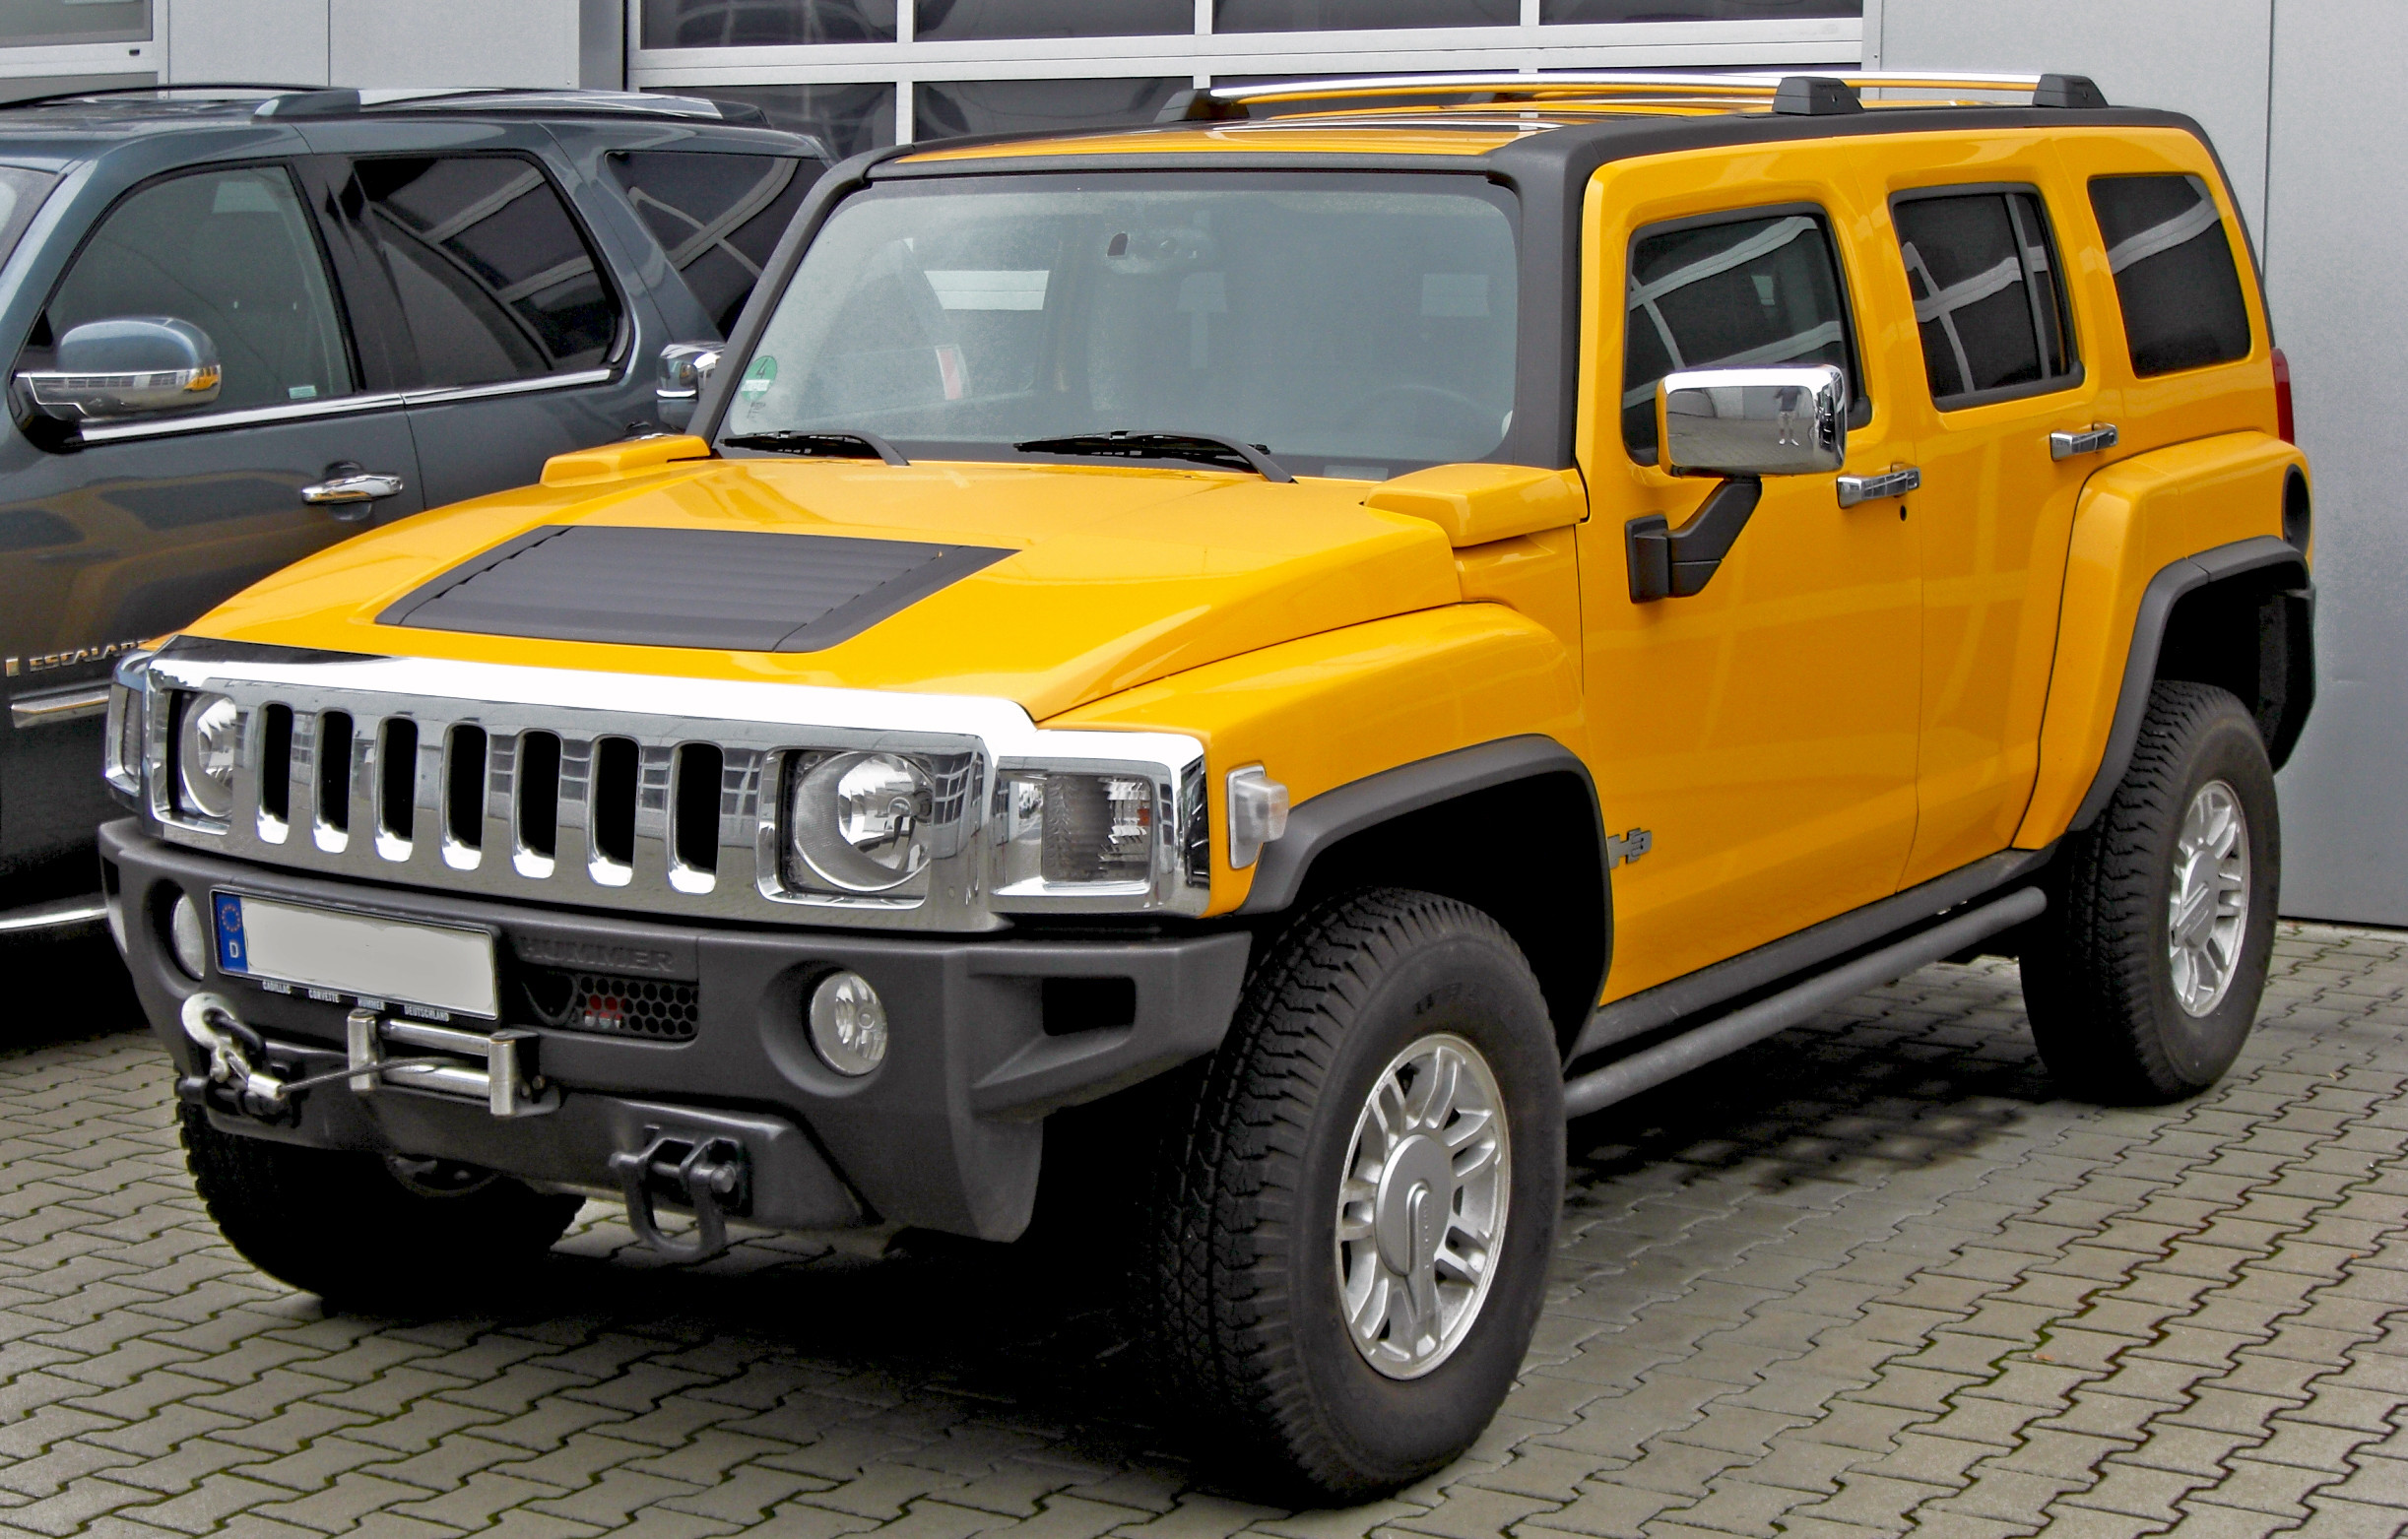 Res: 2445x1563, 2014 Hummer H3